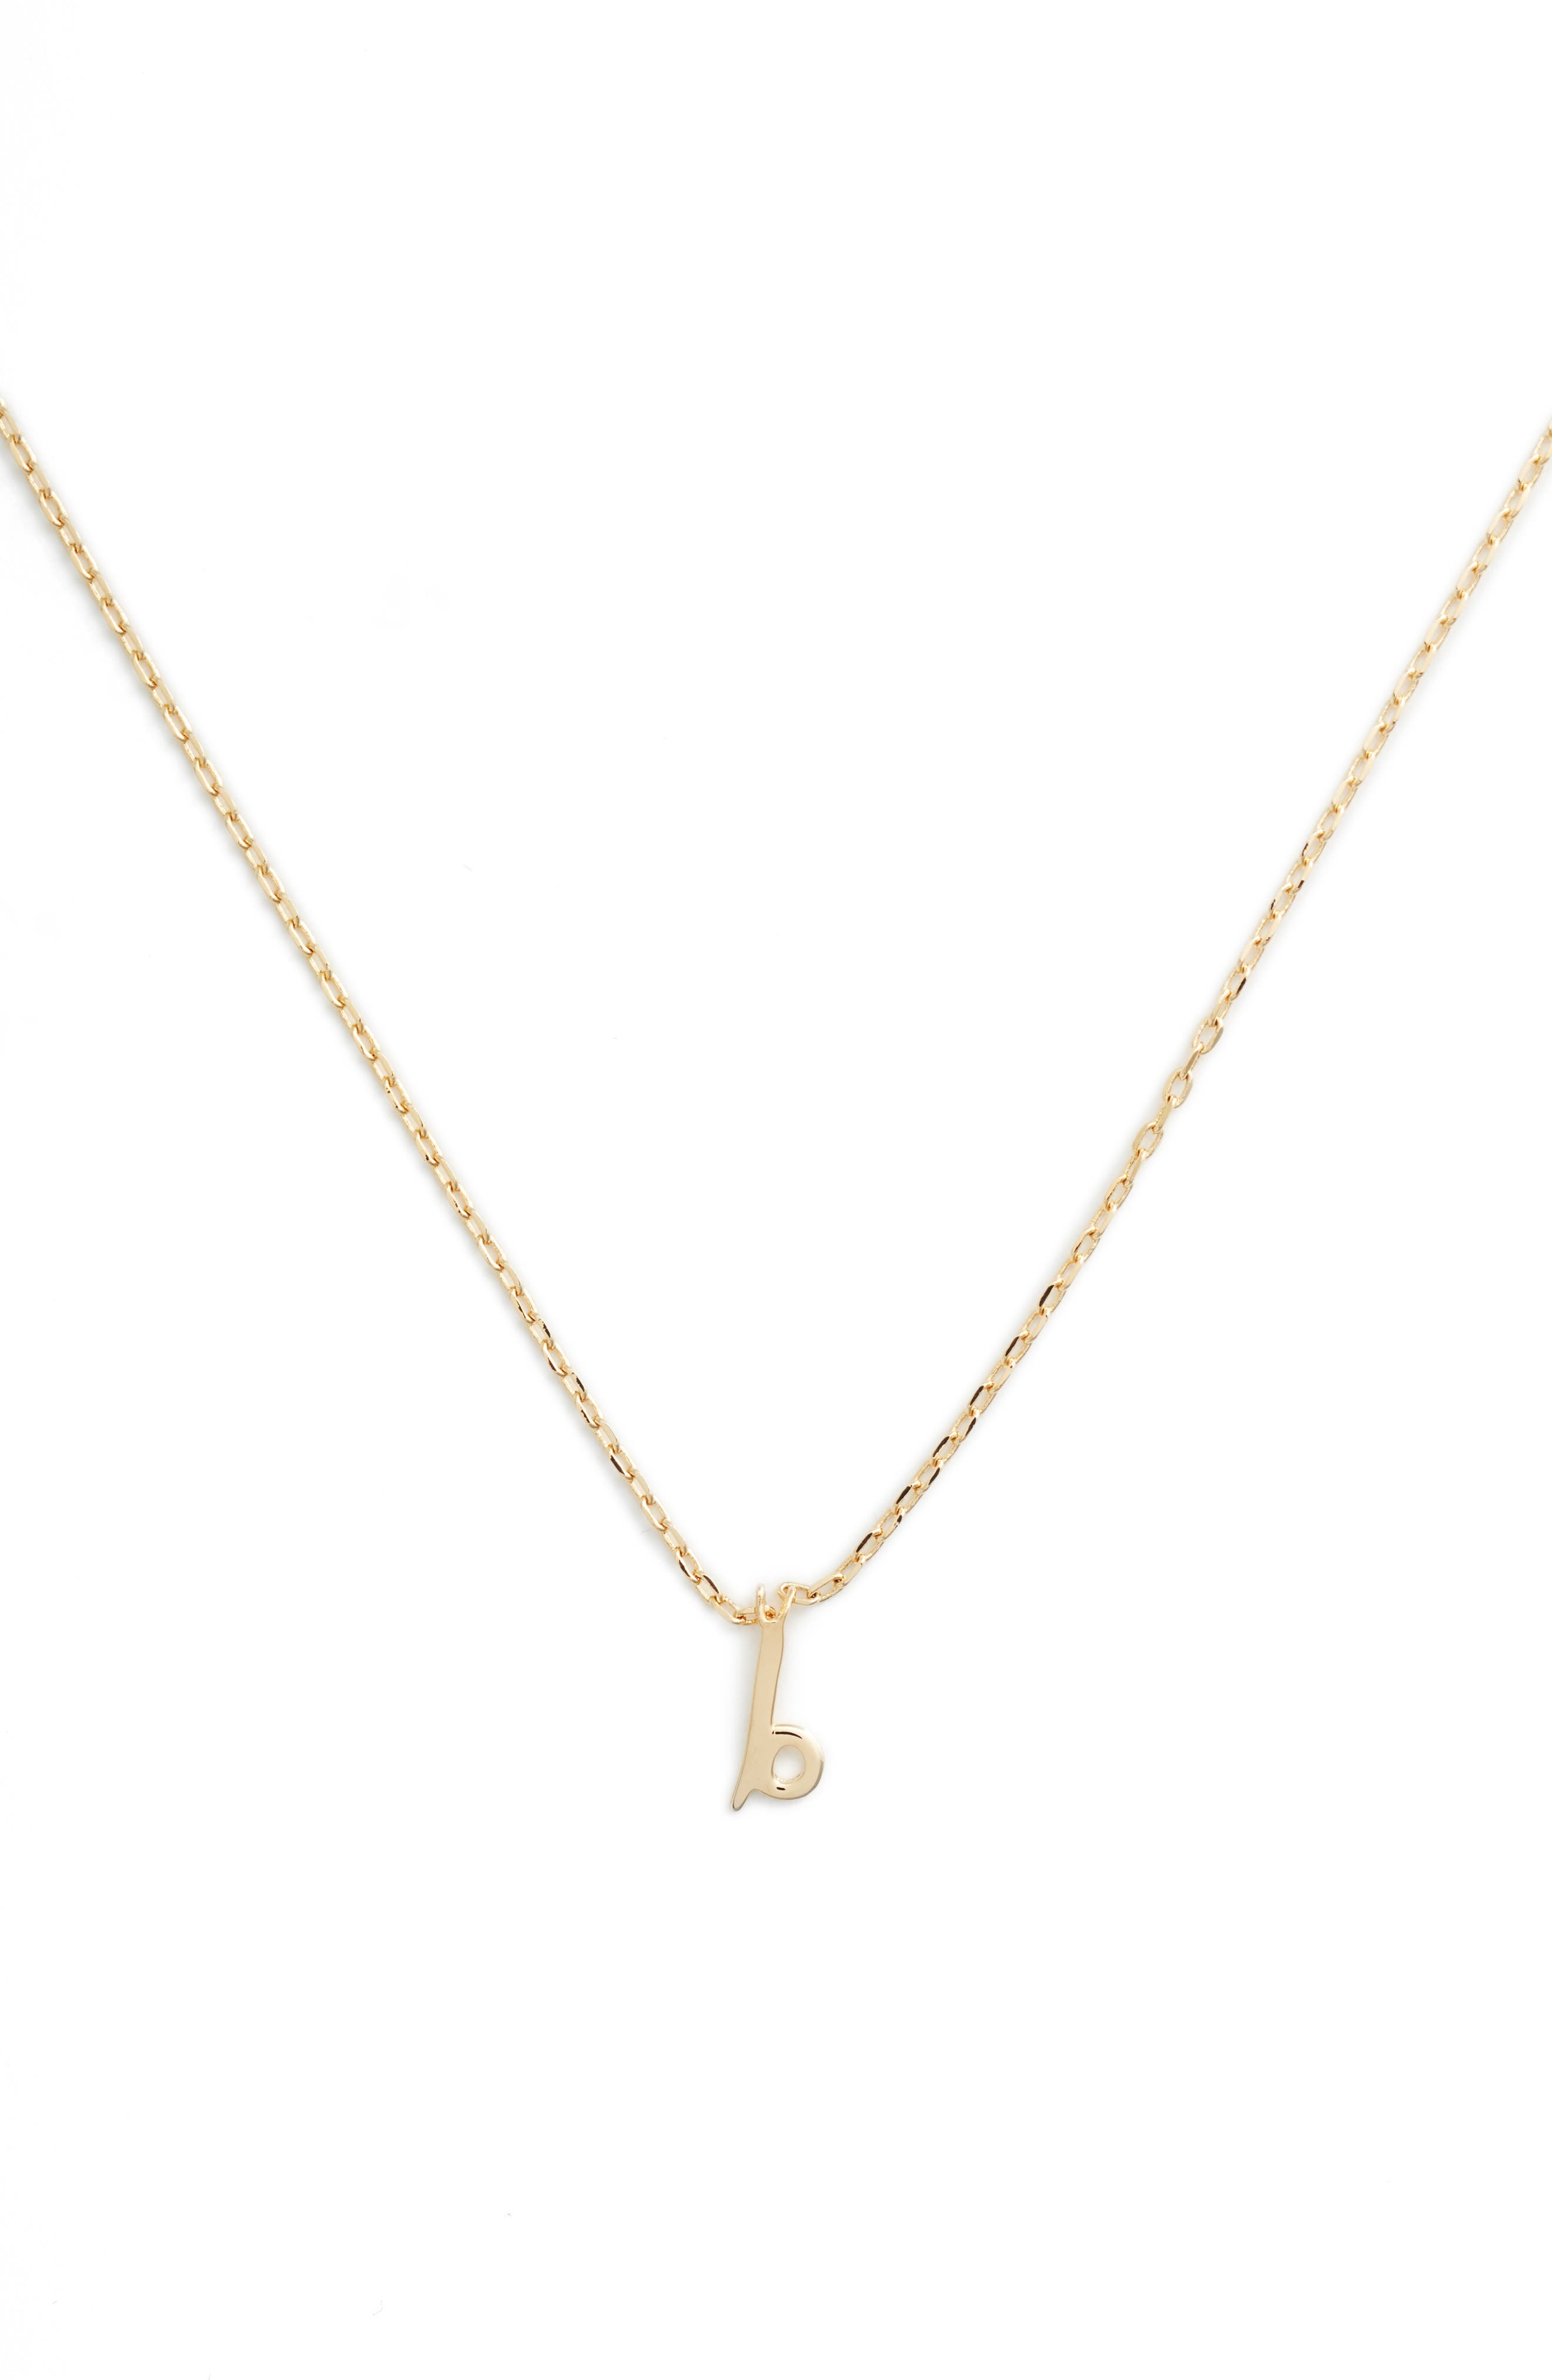 kate spade one in a million initial pendant necklace,                             Main thumbnail 1, color,                             B-GOLD